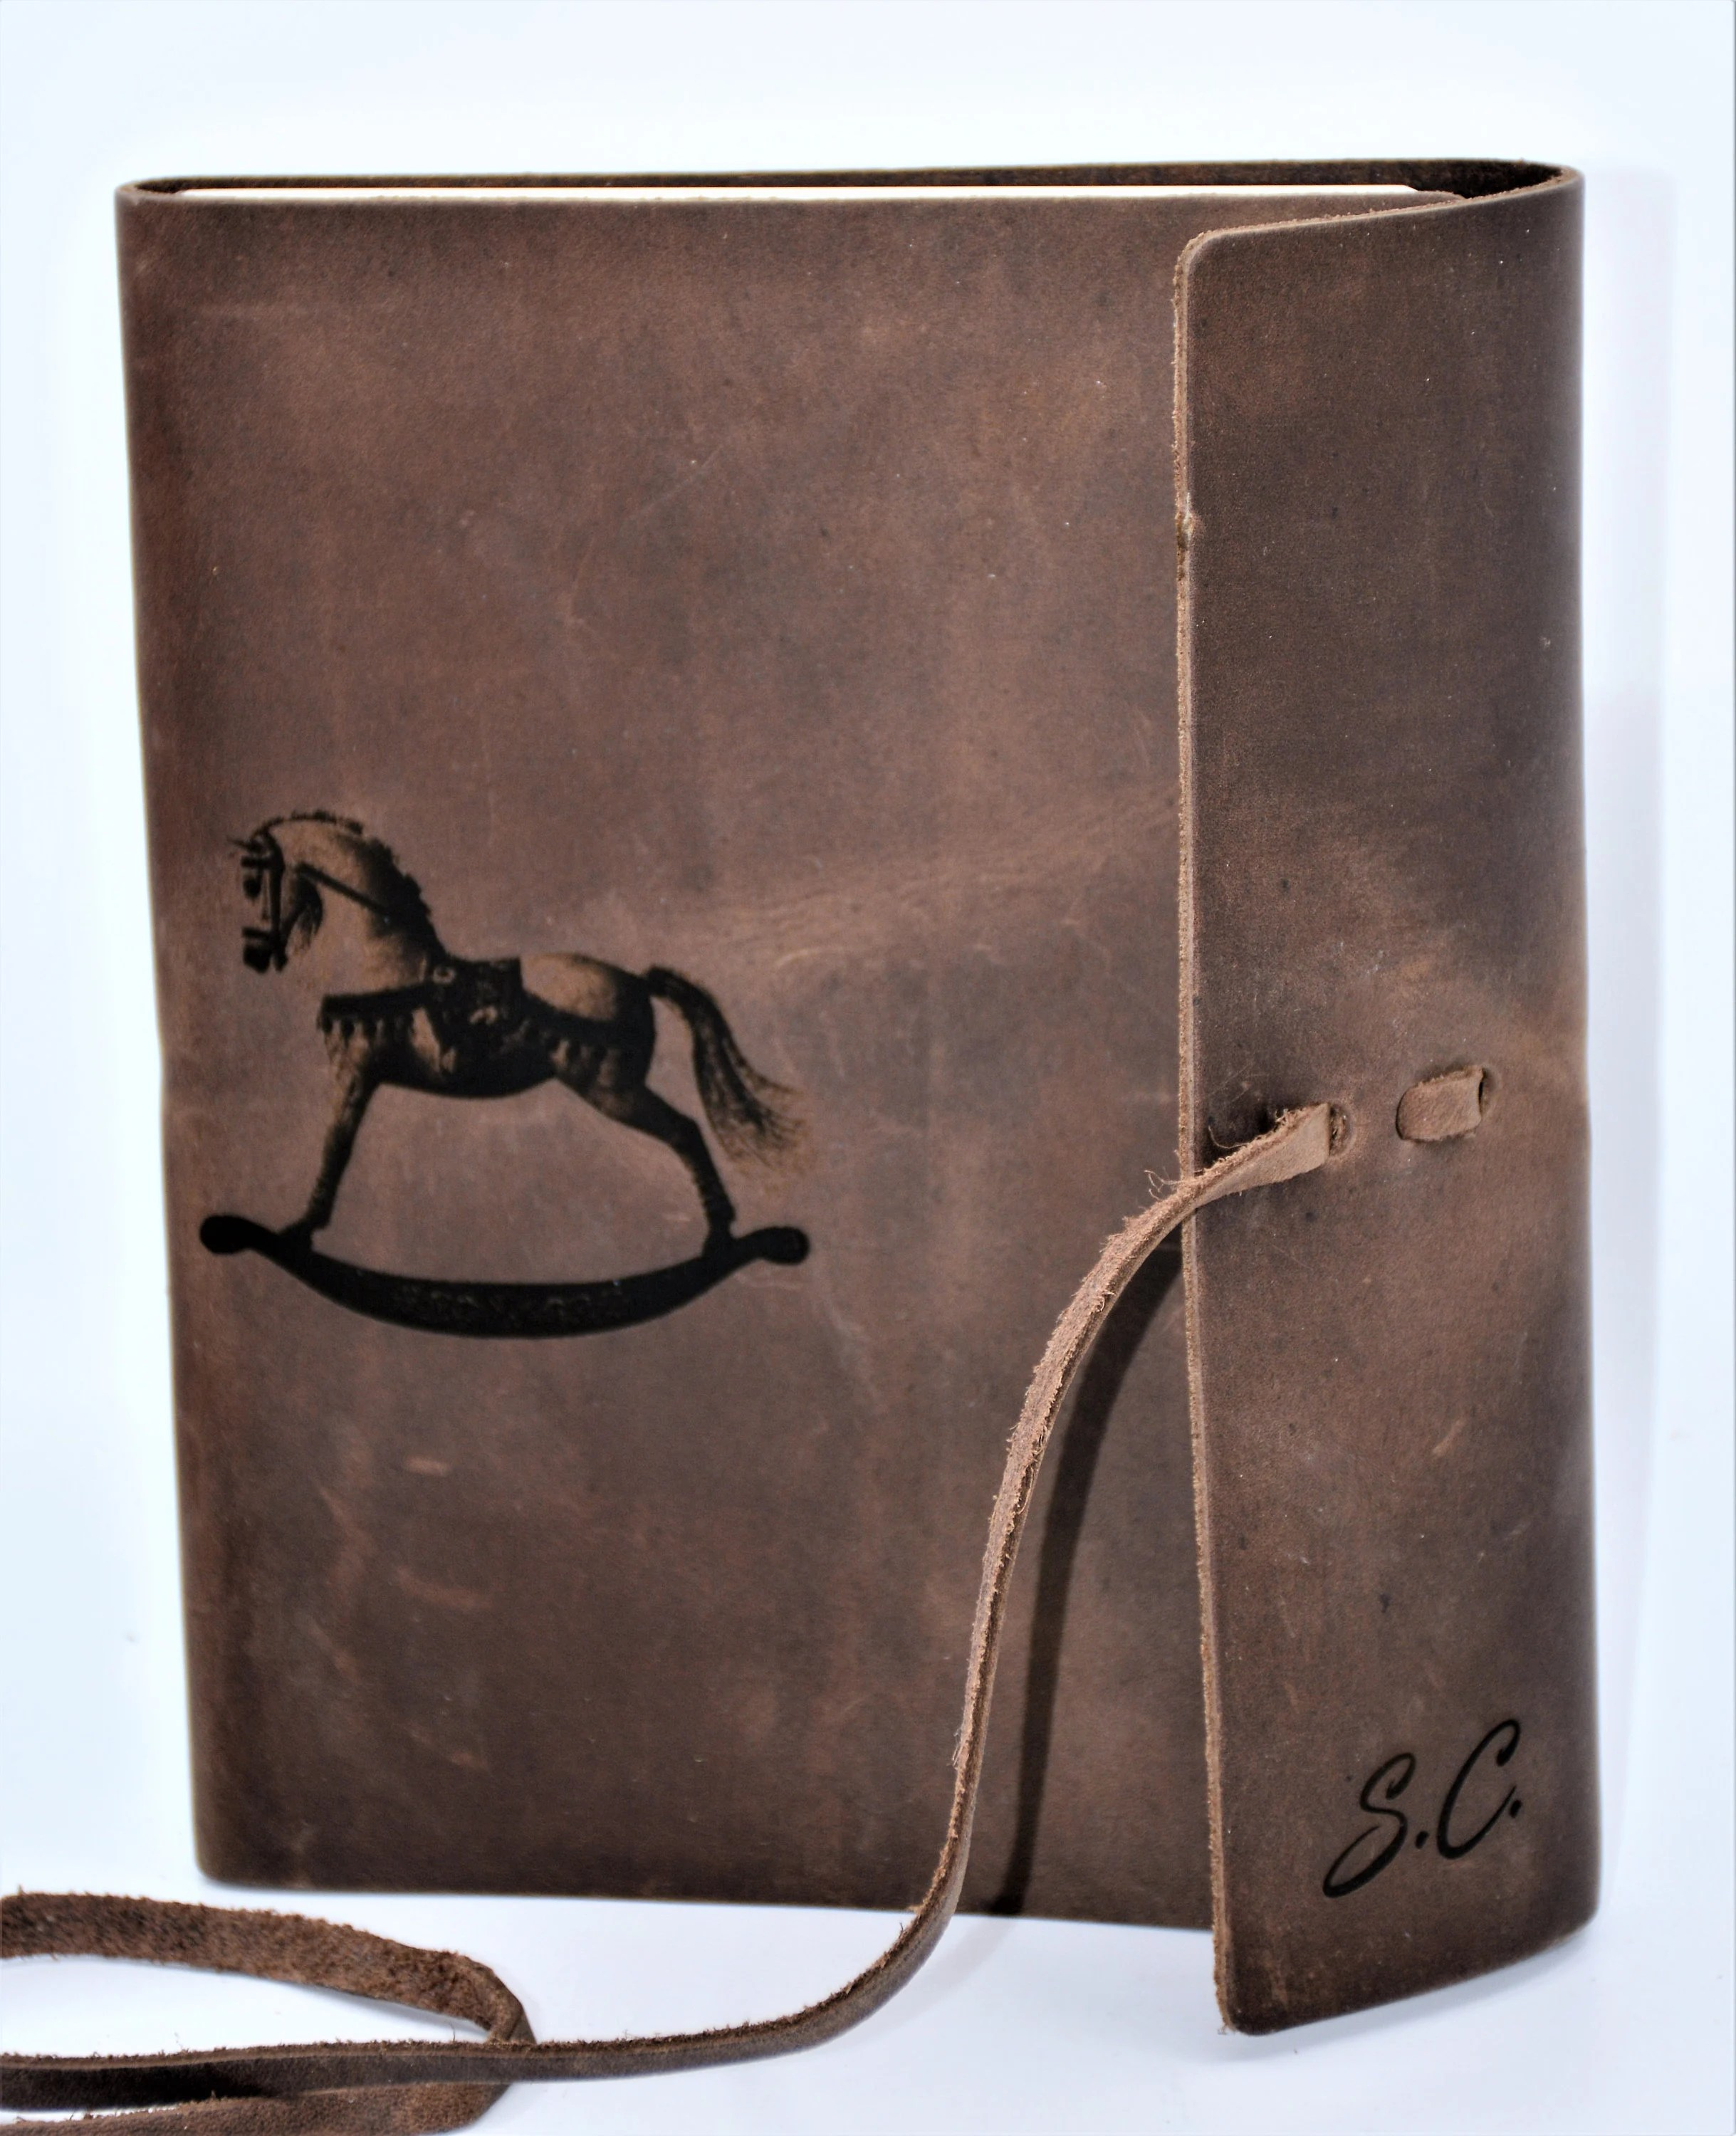 Premium Leather Journal Personalized Custom Engraved image 7